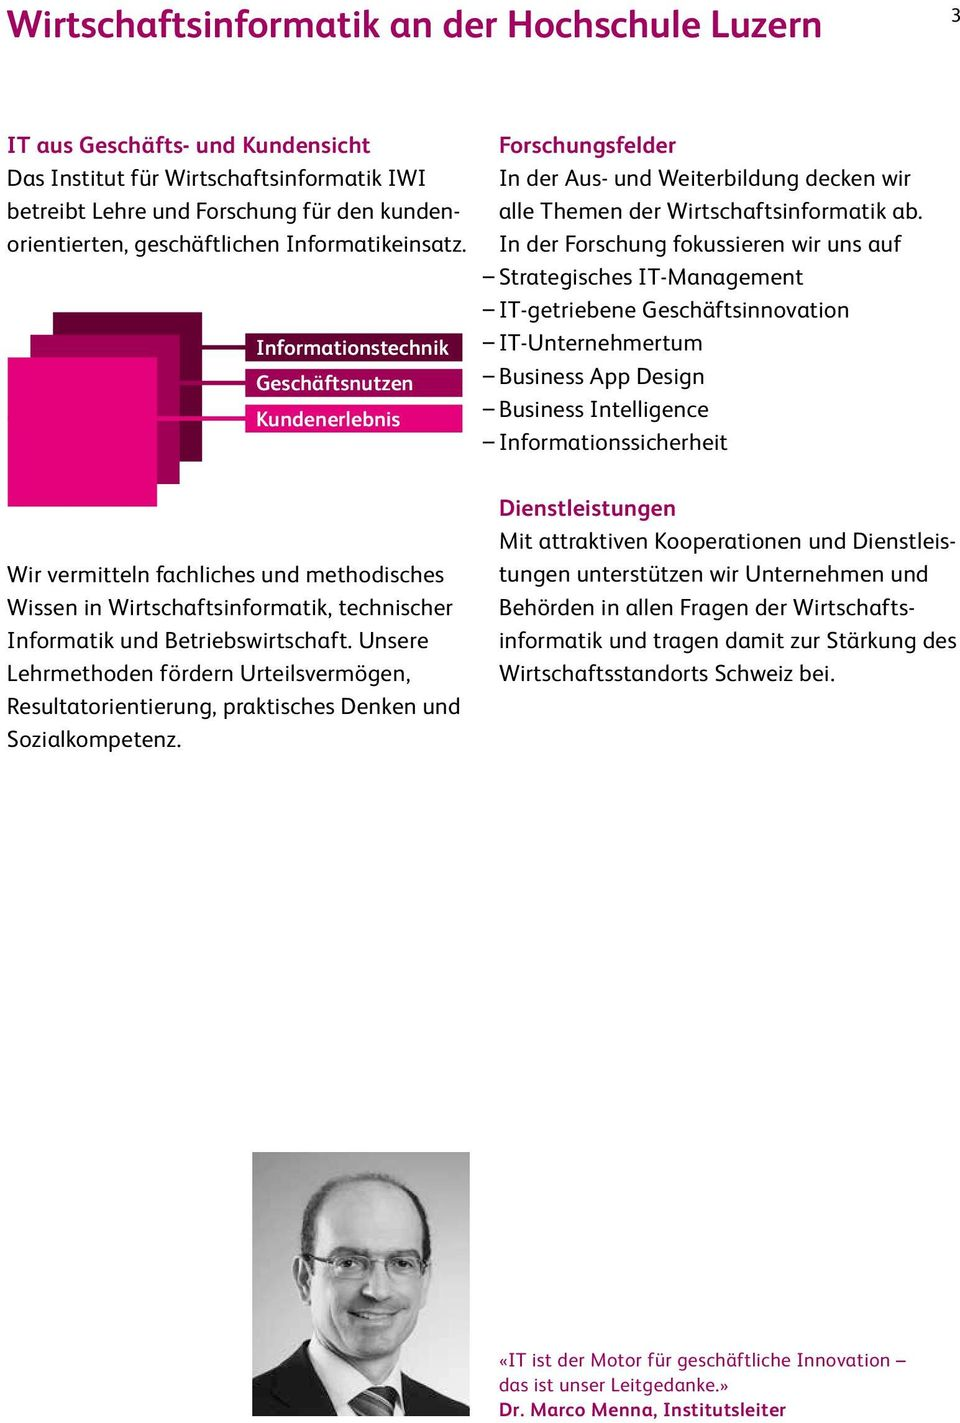 In der Forschung fokussieren wir uns auf Strategisches IT-Management IT-getriebene Geschäftsinnovation IT-Unternehmertum Business App Design Business Intelligence Informationssicherheit Wir